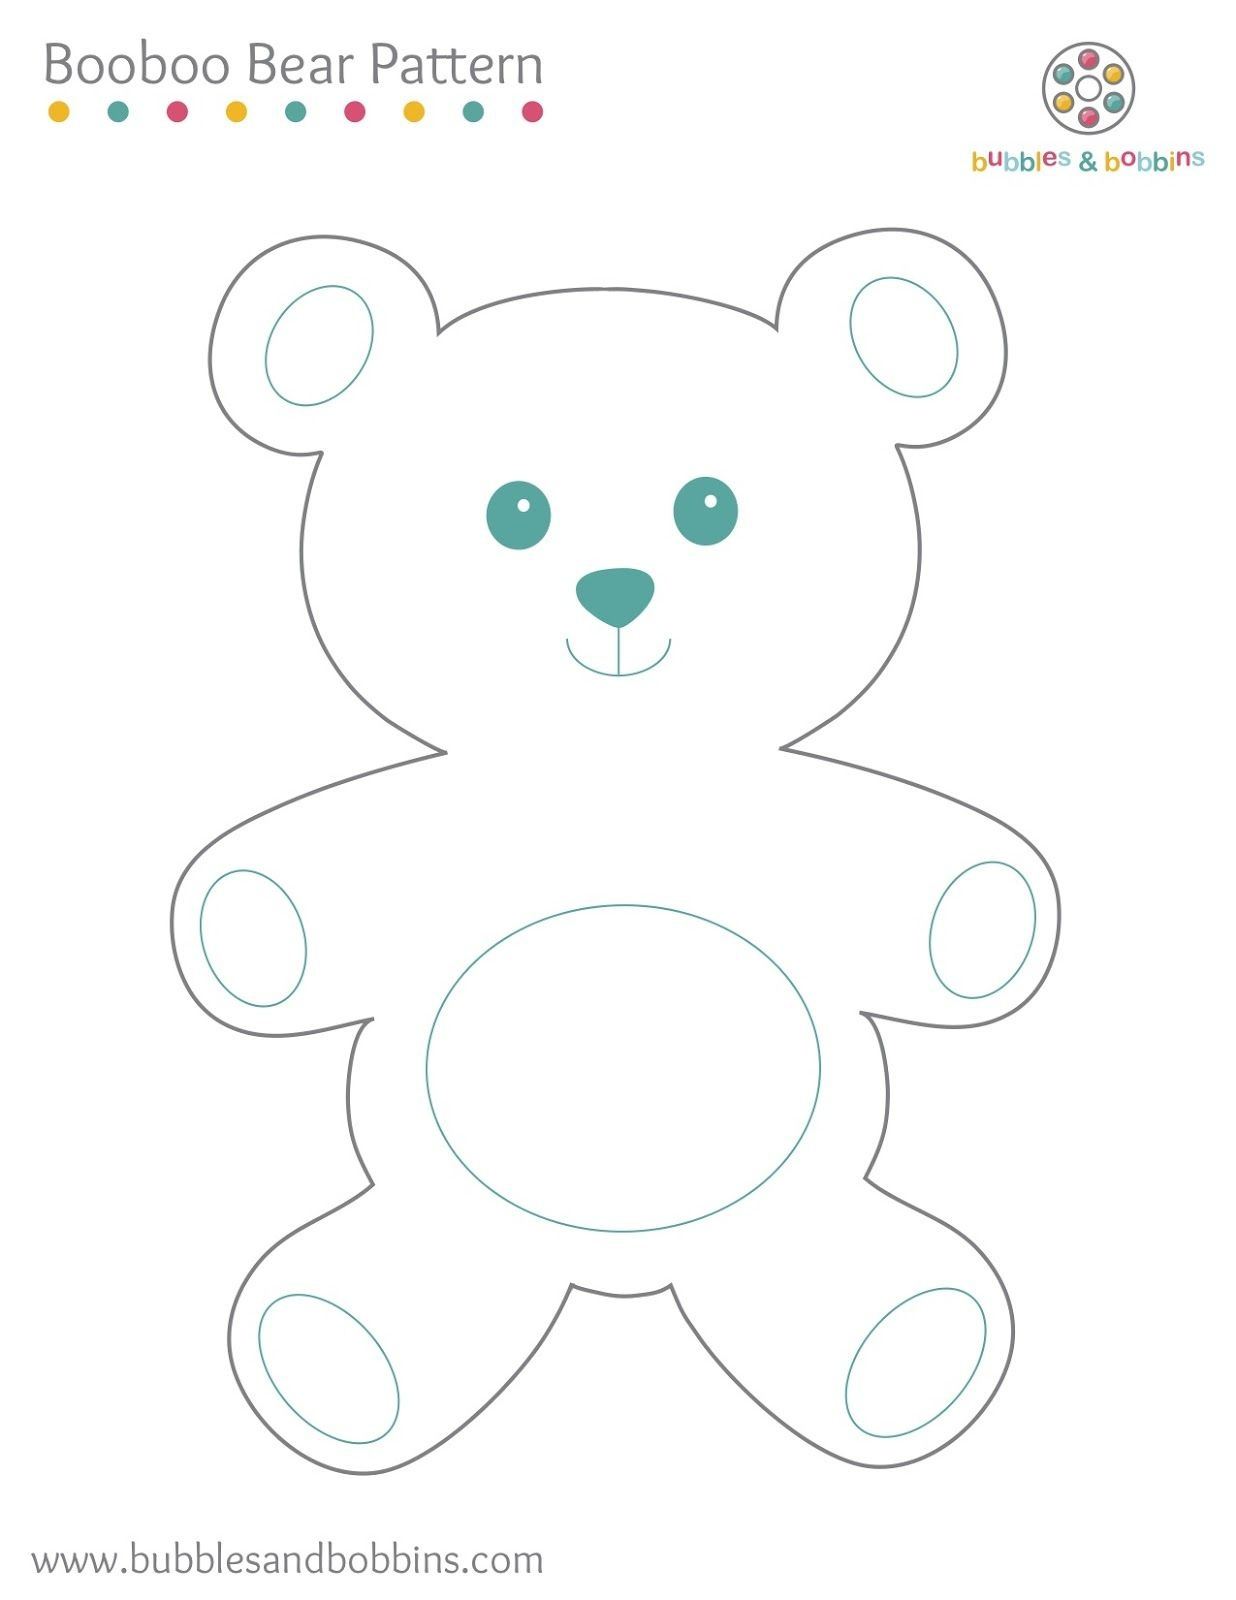 Booboo Bear Pattern | Stuffed Toy Patterns & Ideas | Teddy Bear - Free Printable Patchwork Teddy Bear Pattern